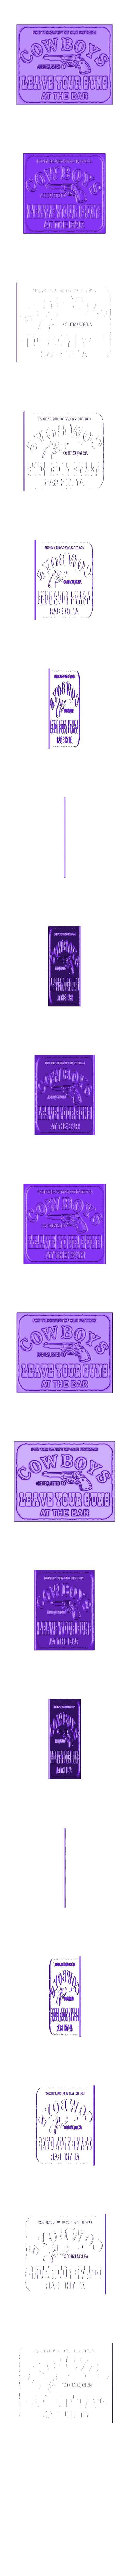 Cowboy.stl Download free STL file Pub Sign • 3D printable design, Account-Closed